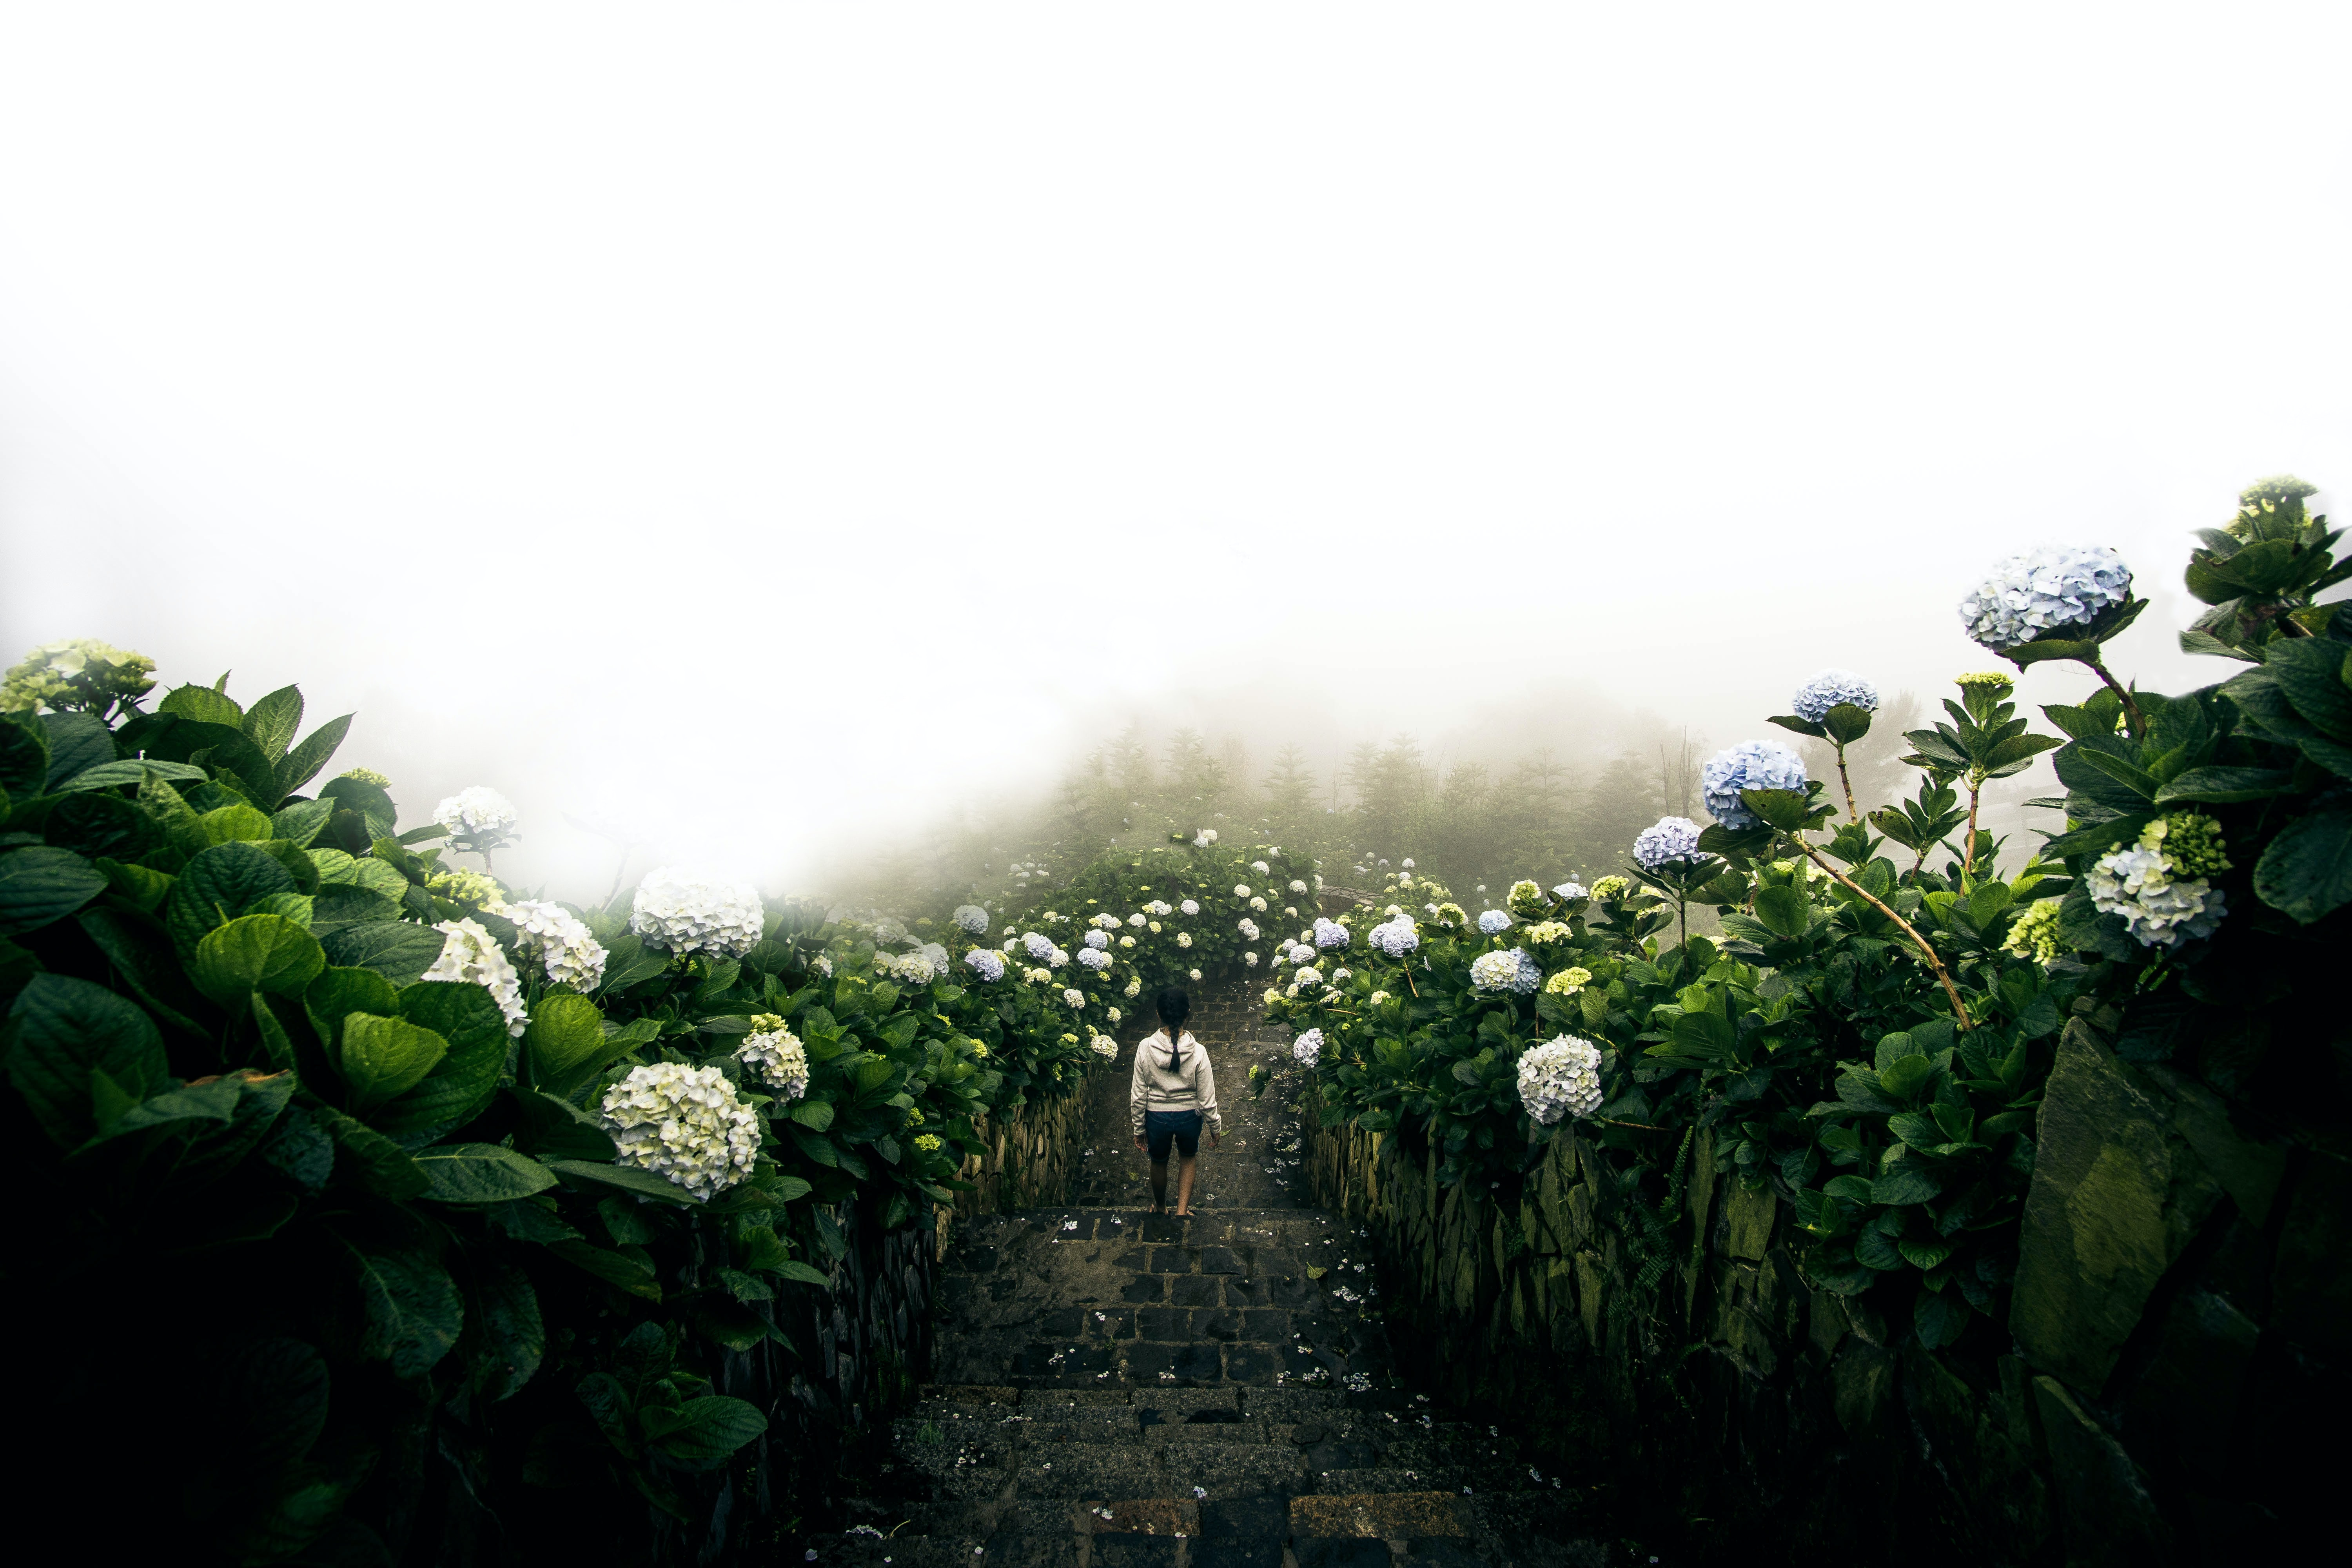 A woman walking down stone steps lined with white hydrangea flowers